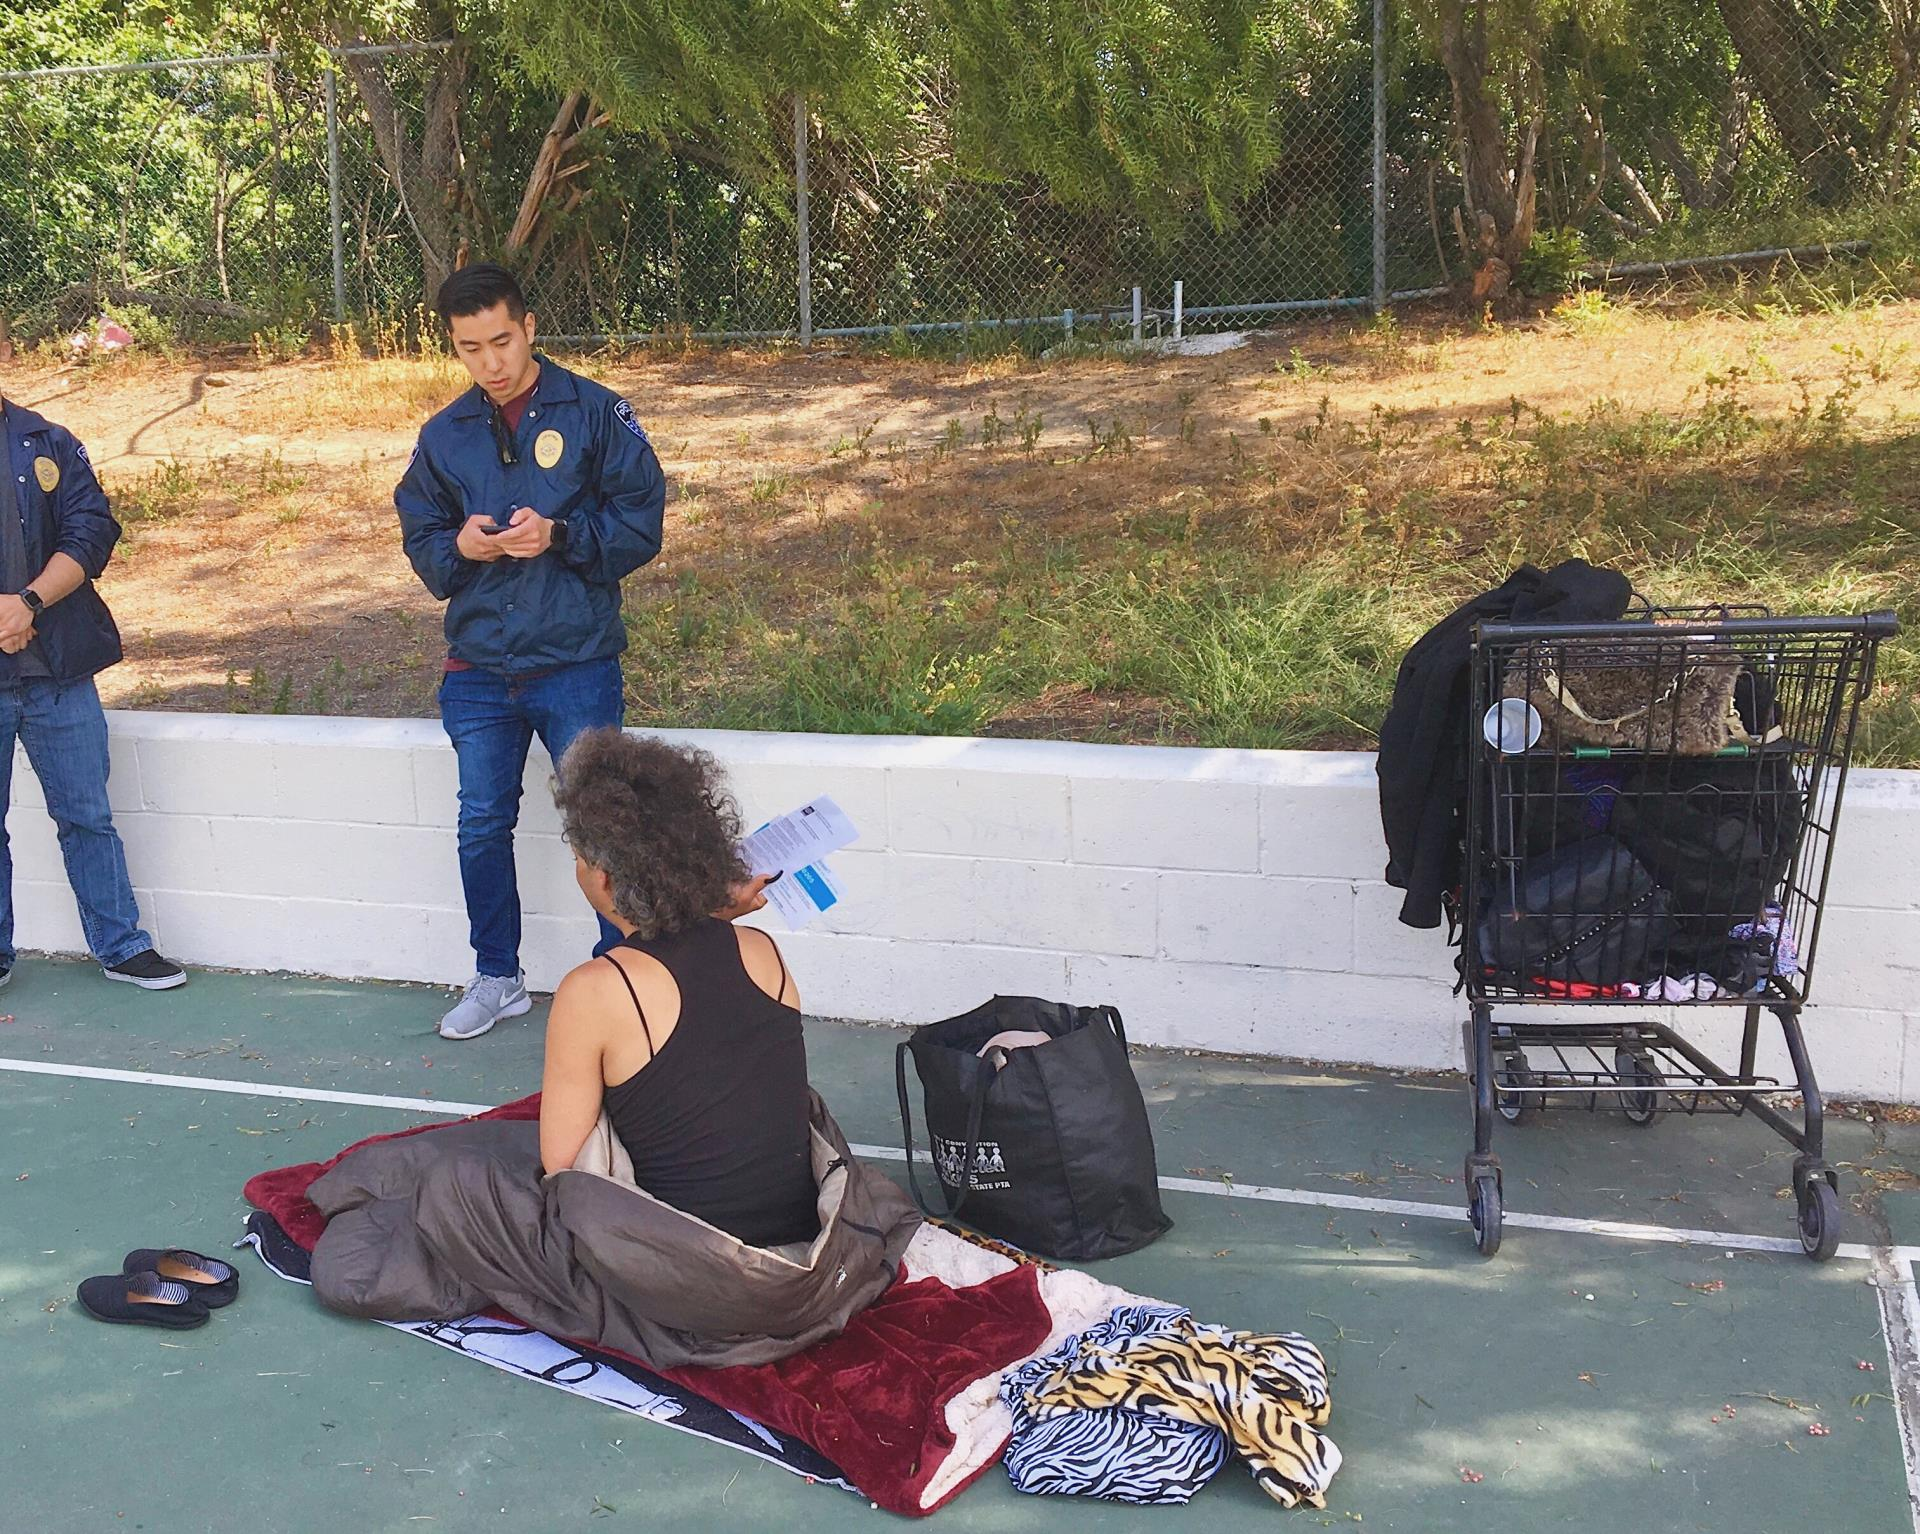 Homeless Resources City Of Torrance